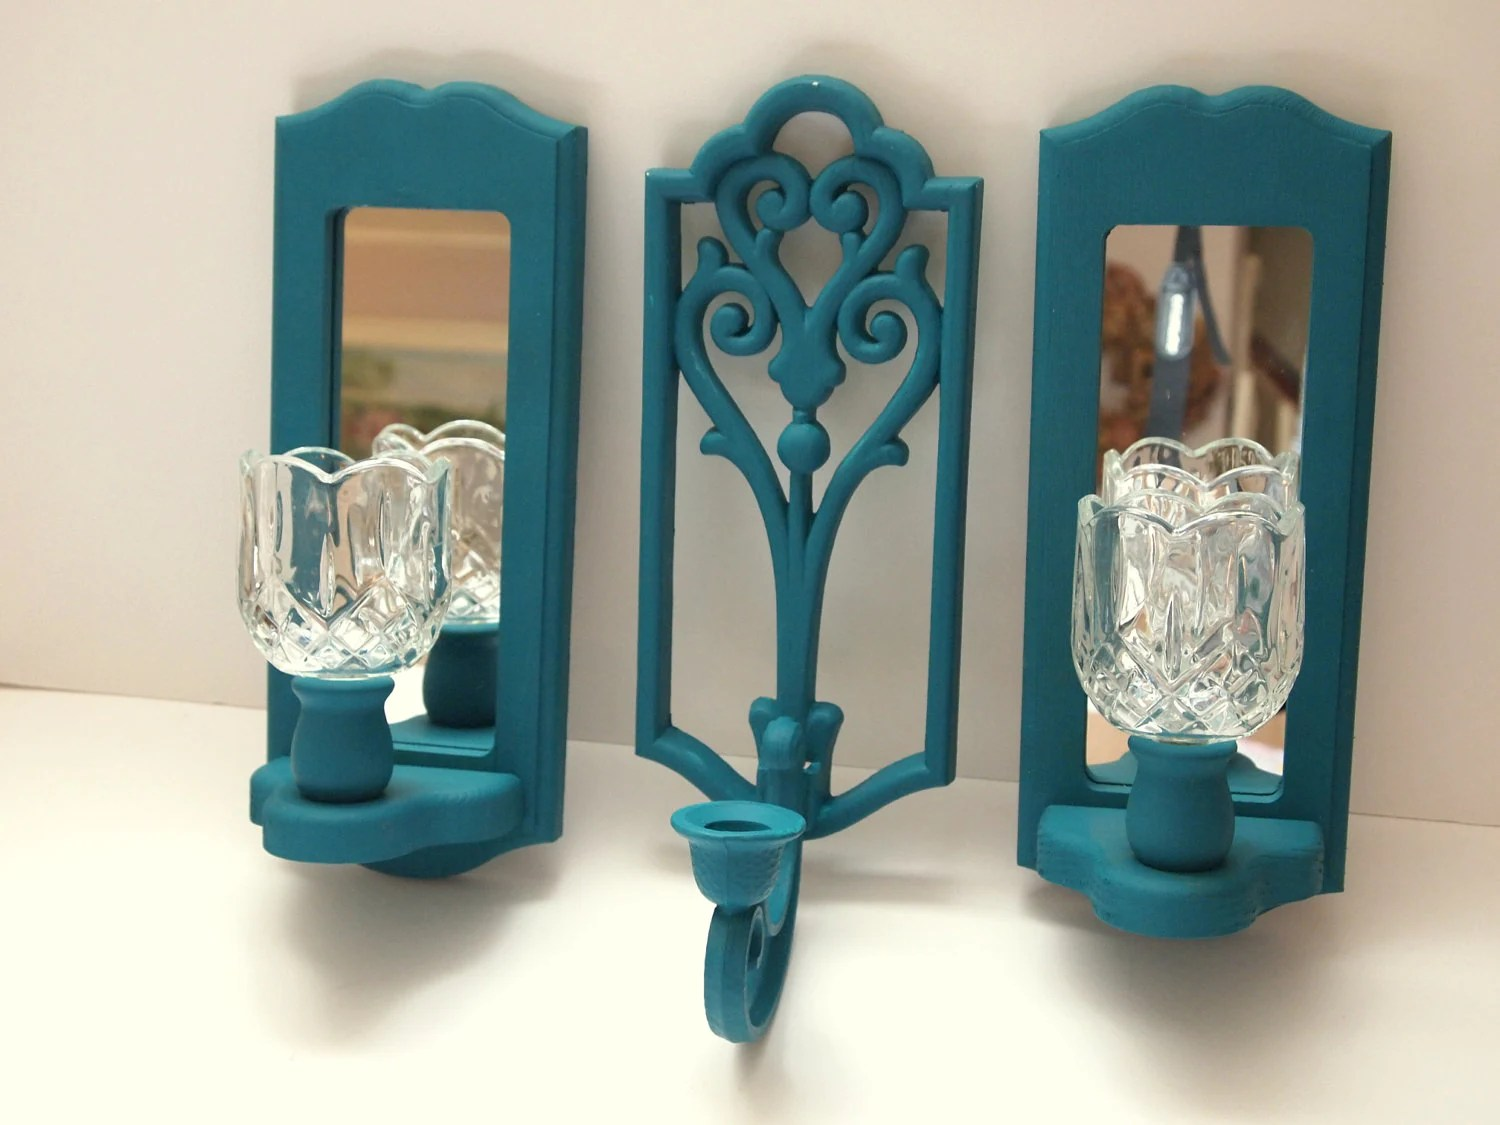 Teal House Accessories